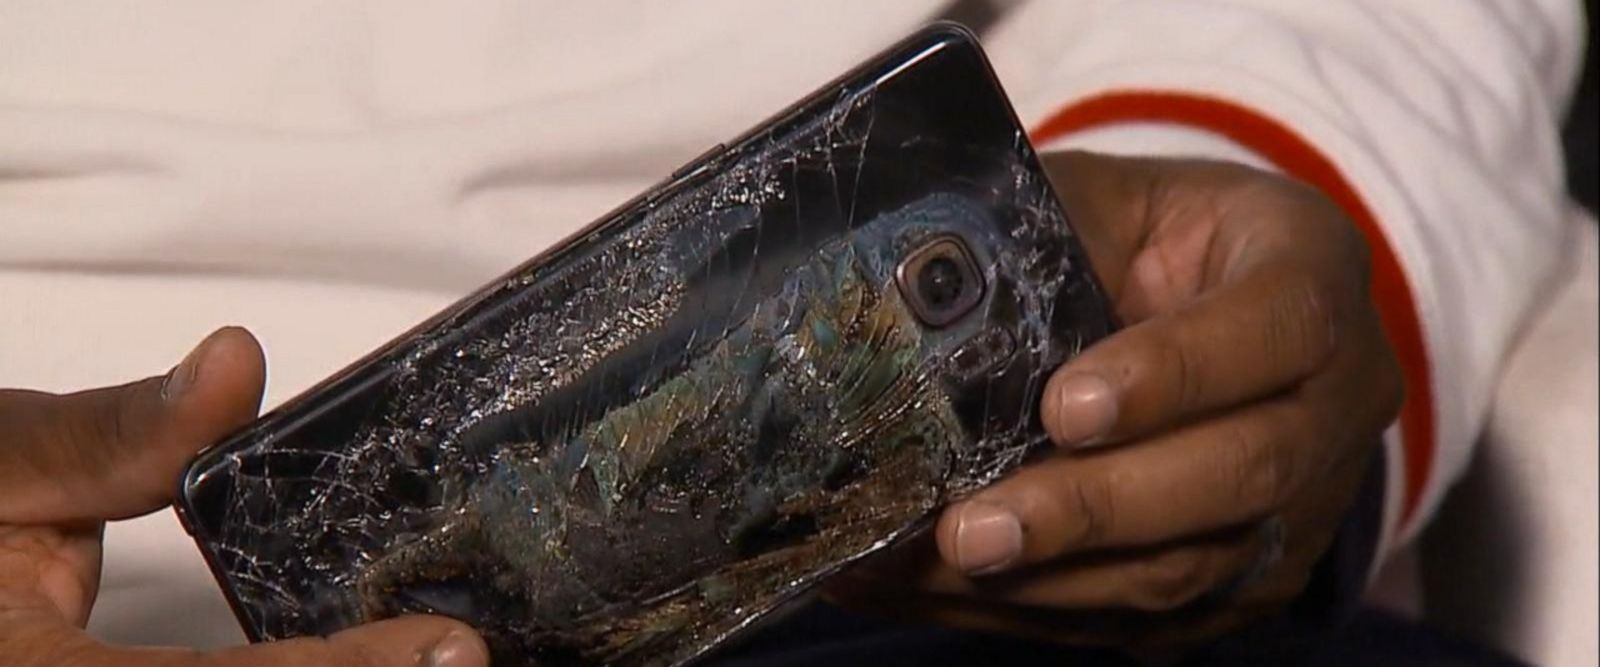 VIDEO: Samsung Reveals Cause of Exploding Galaxy Note 7 Smartphones